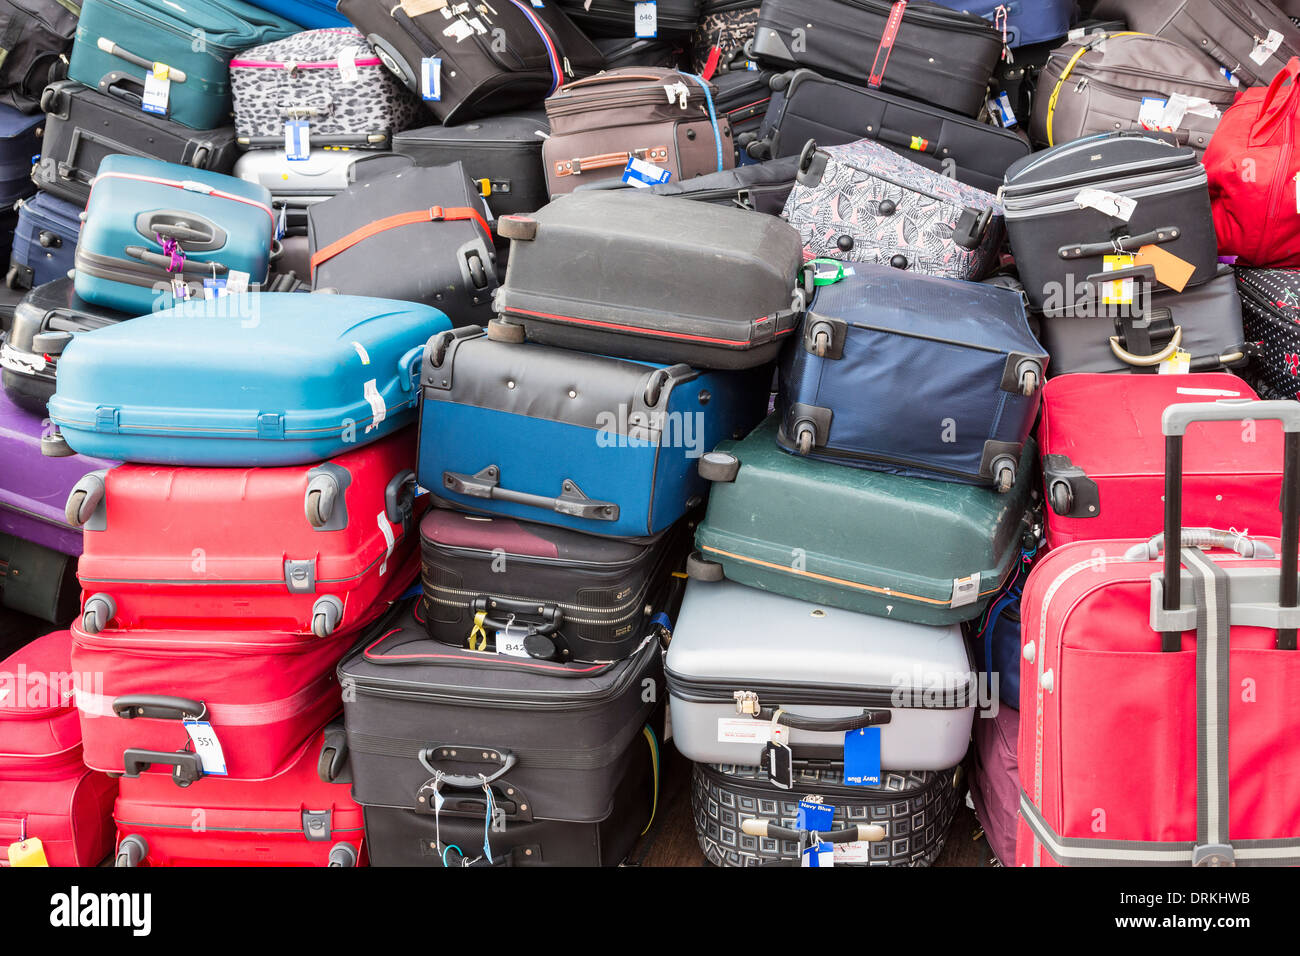 Baggage on cruise ship to be off loaded - Stock Image